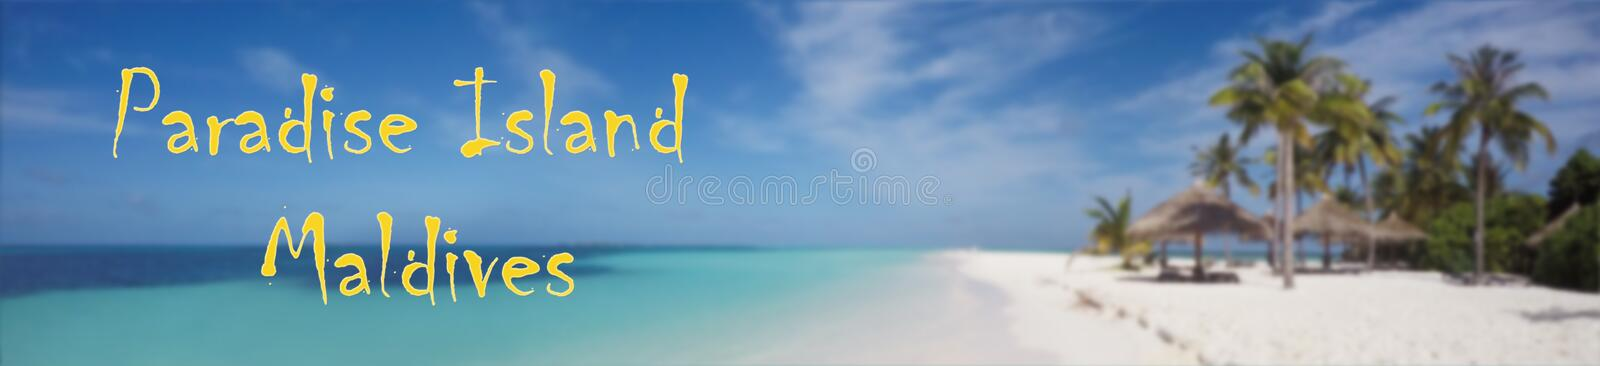 Tropical Beach Paradise. Island Of Maldives in Indian Ocean Blurred Background royalty free stock images